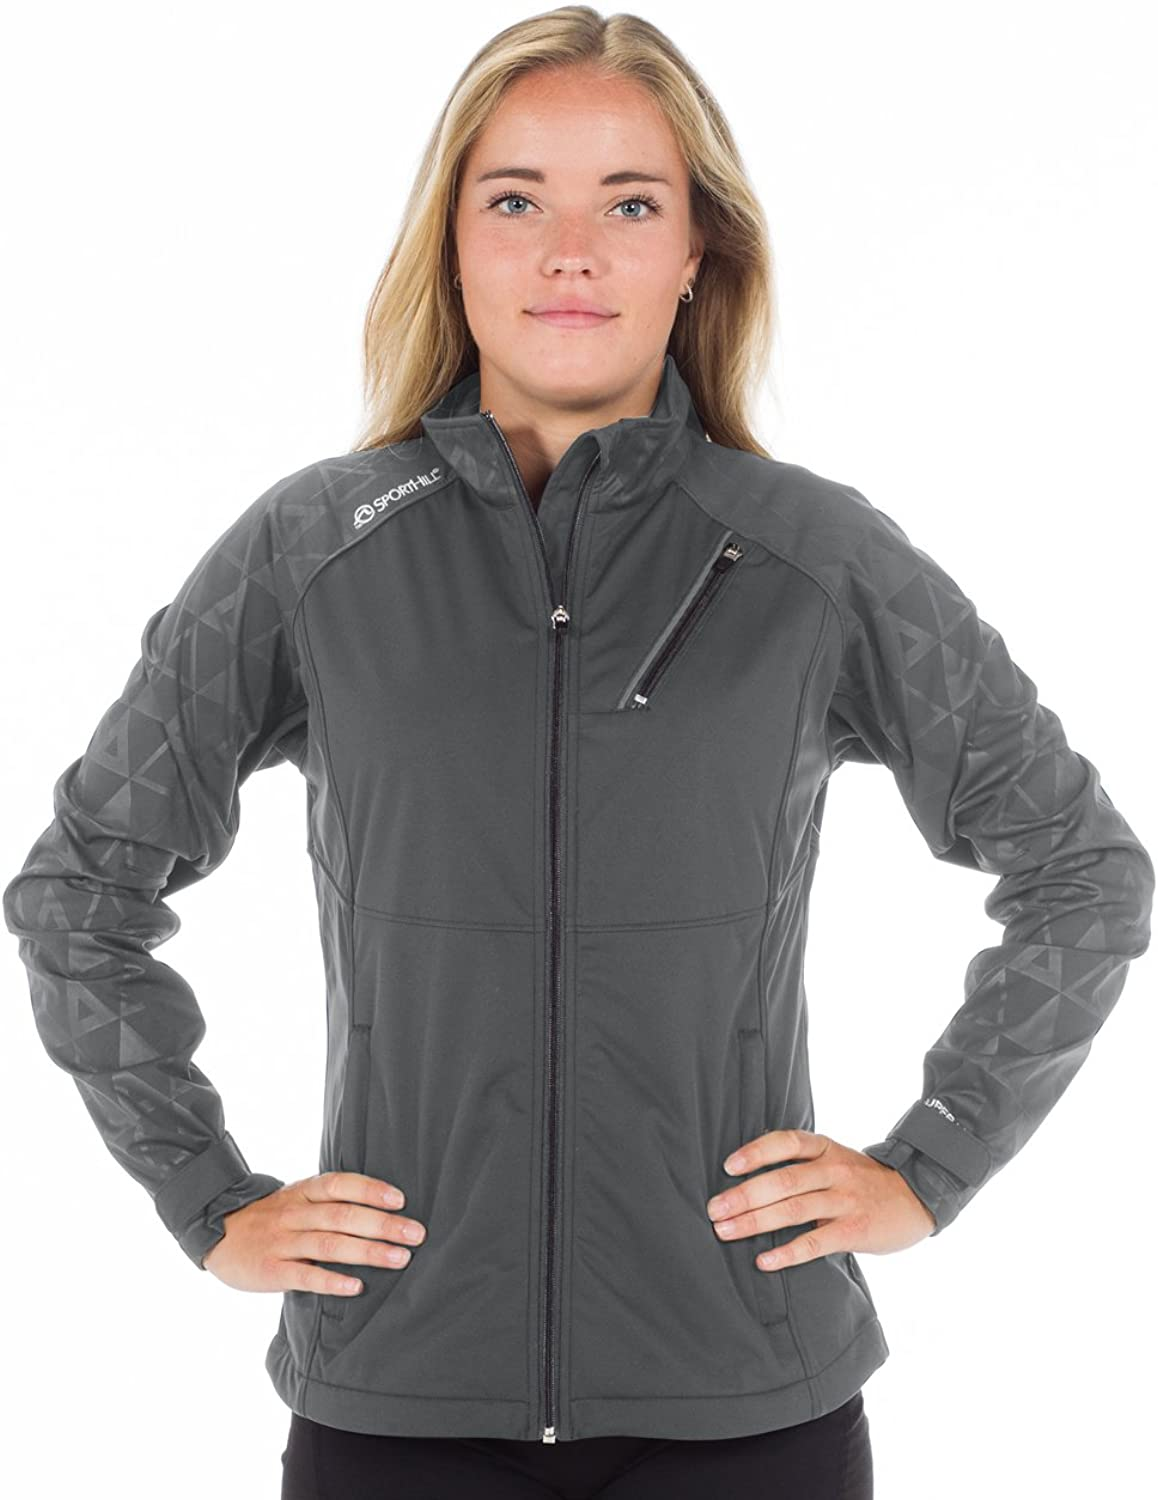 Sport Hill Women's Super XC Jacket, XLarge, Pewter